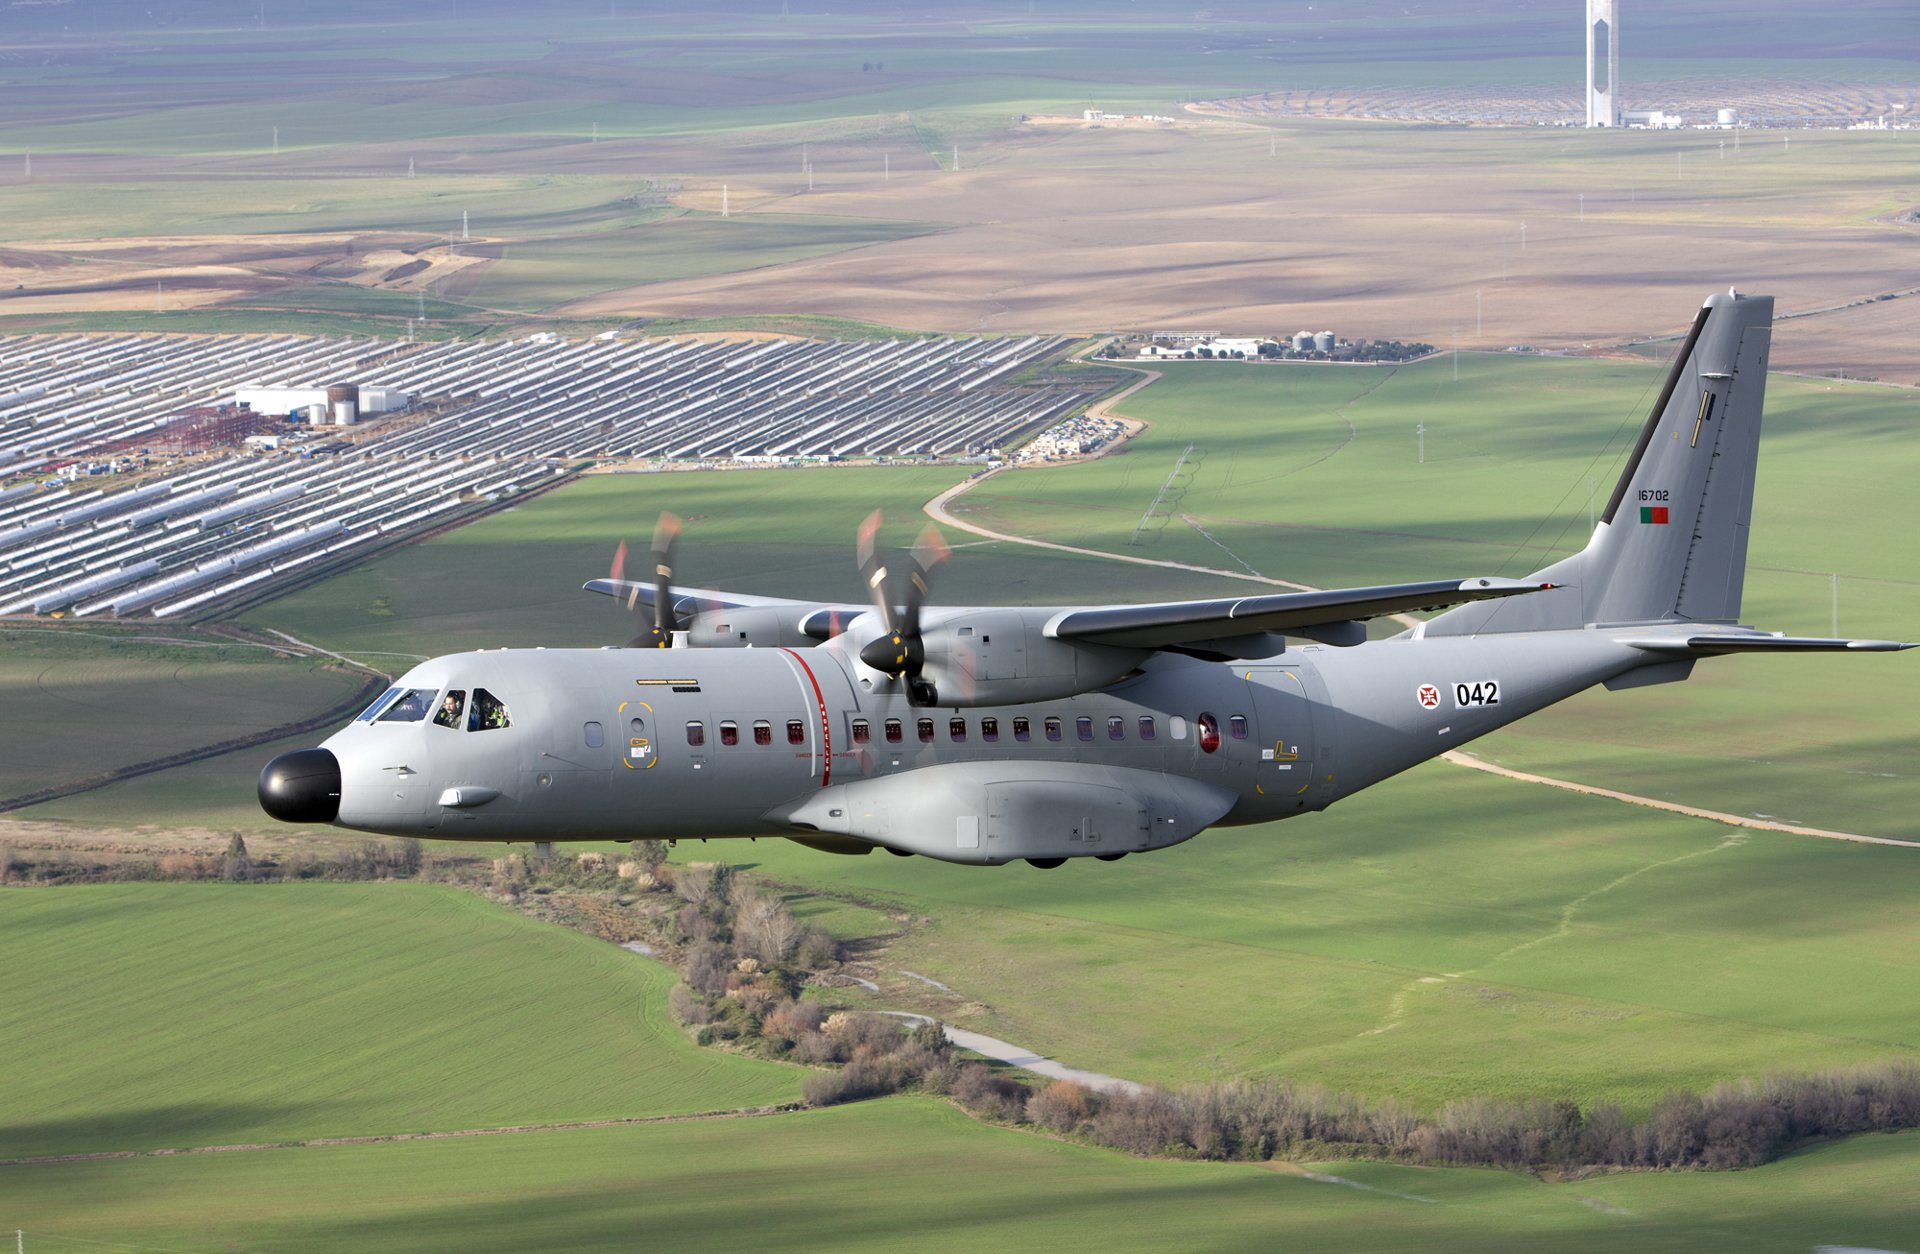 Side view of an in-flight Airbus C295 transport aircraft.